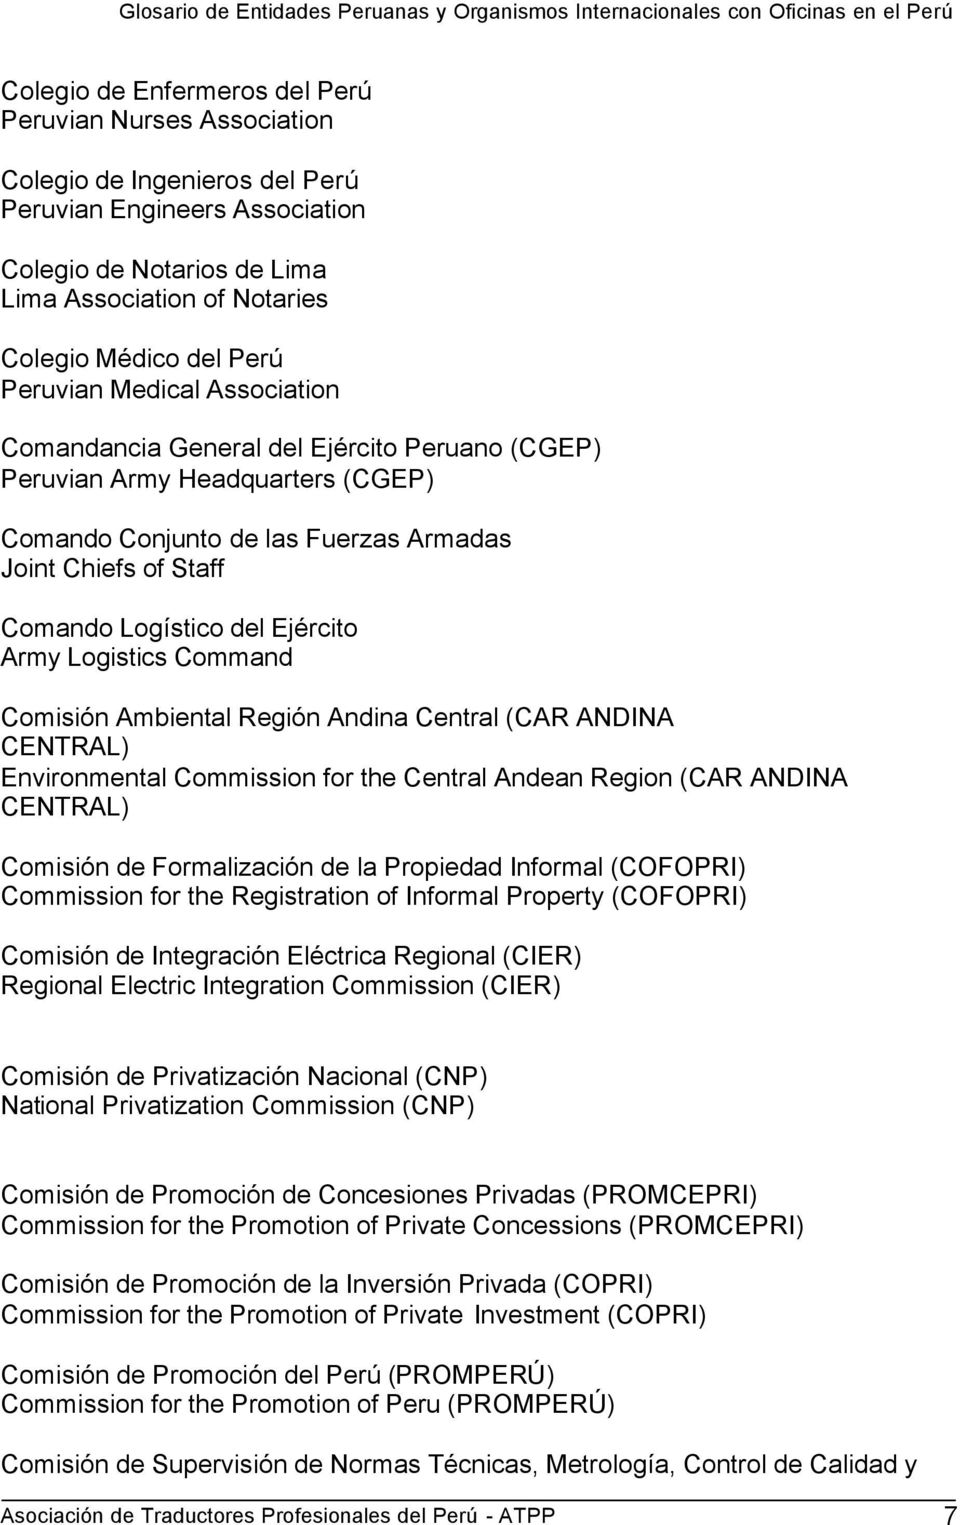 Ejército Army Logistics Command Comisión Ambiental Región Andina Central (CAR ANDINA CENTRAL) Environmental Commission for the Central Andean Region (CAR ANDINA CENTRAL) Comisión de Formalización de